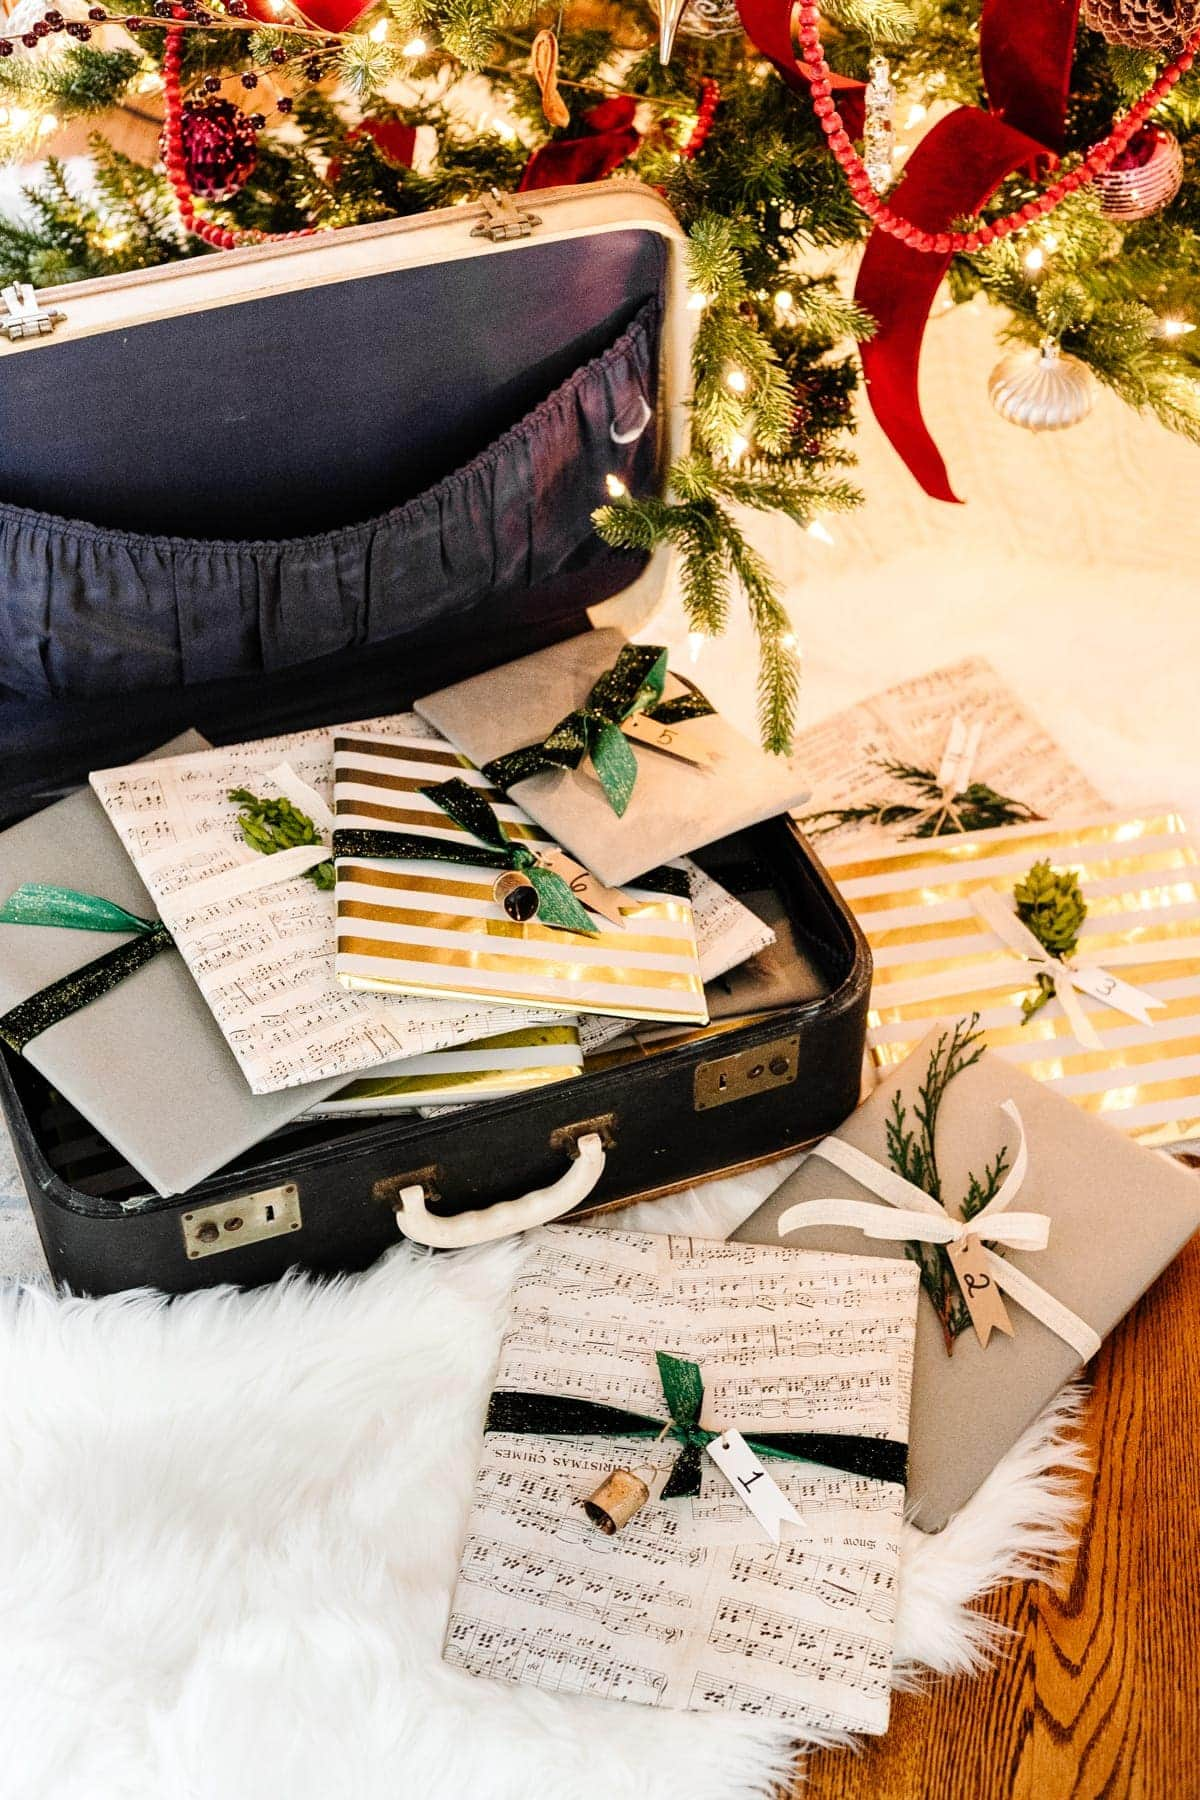 secondhand suitcase used as a storybook Christmas advent calendar